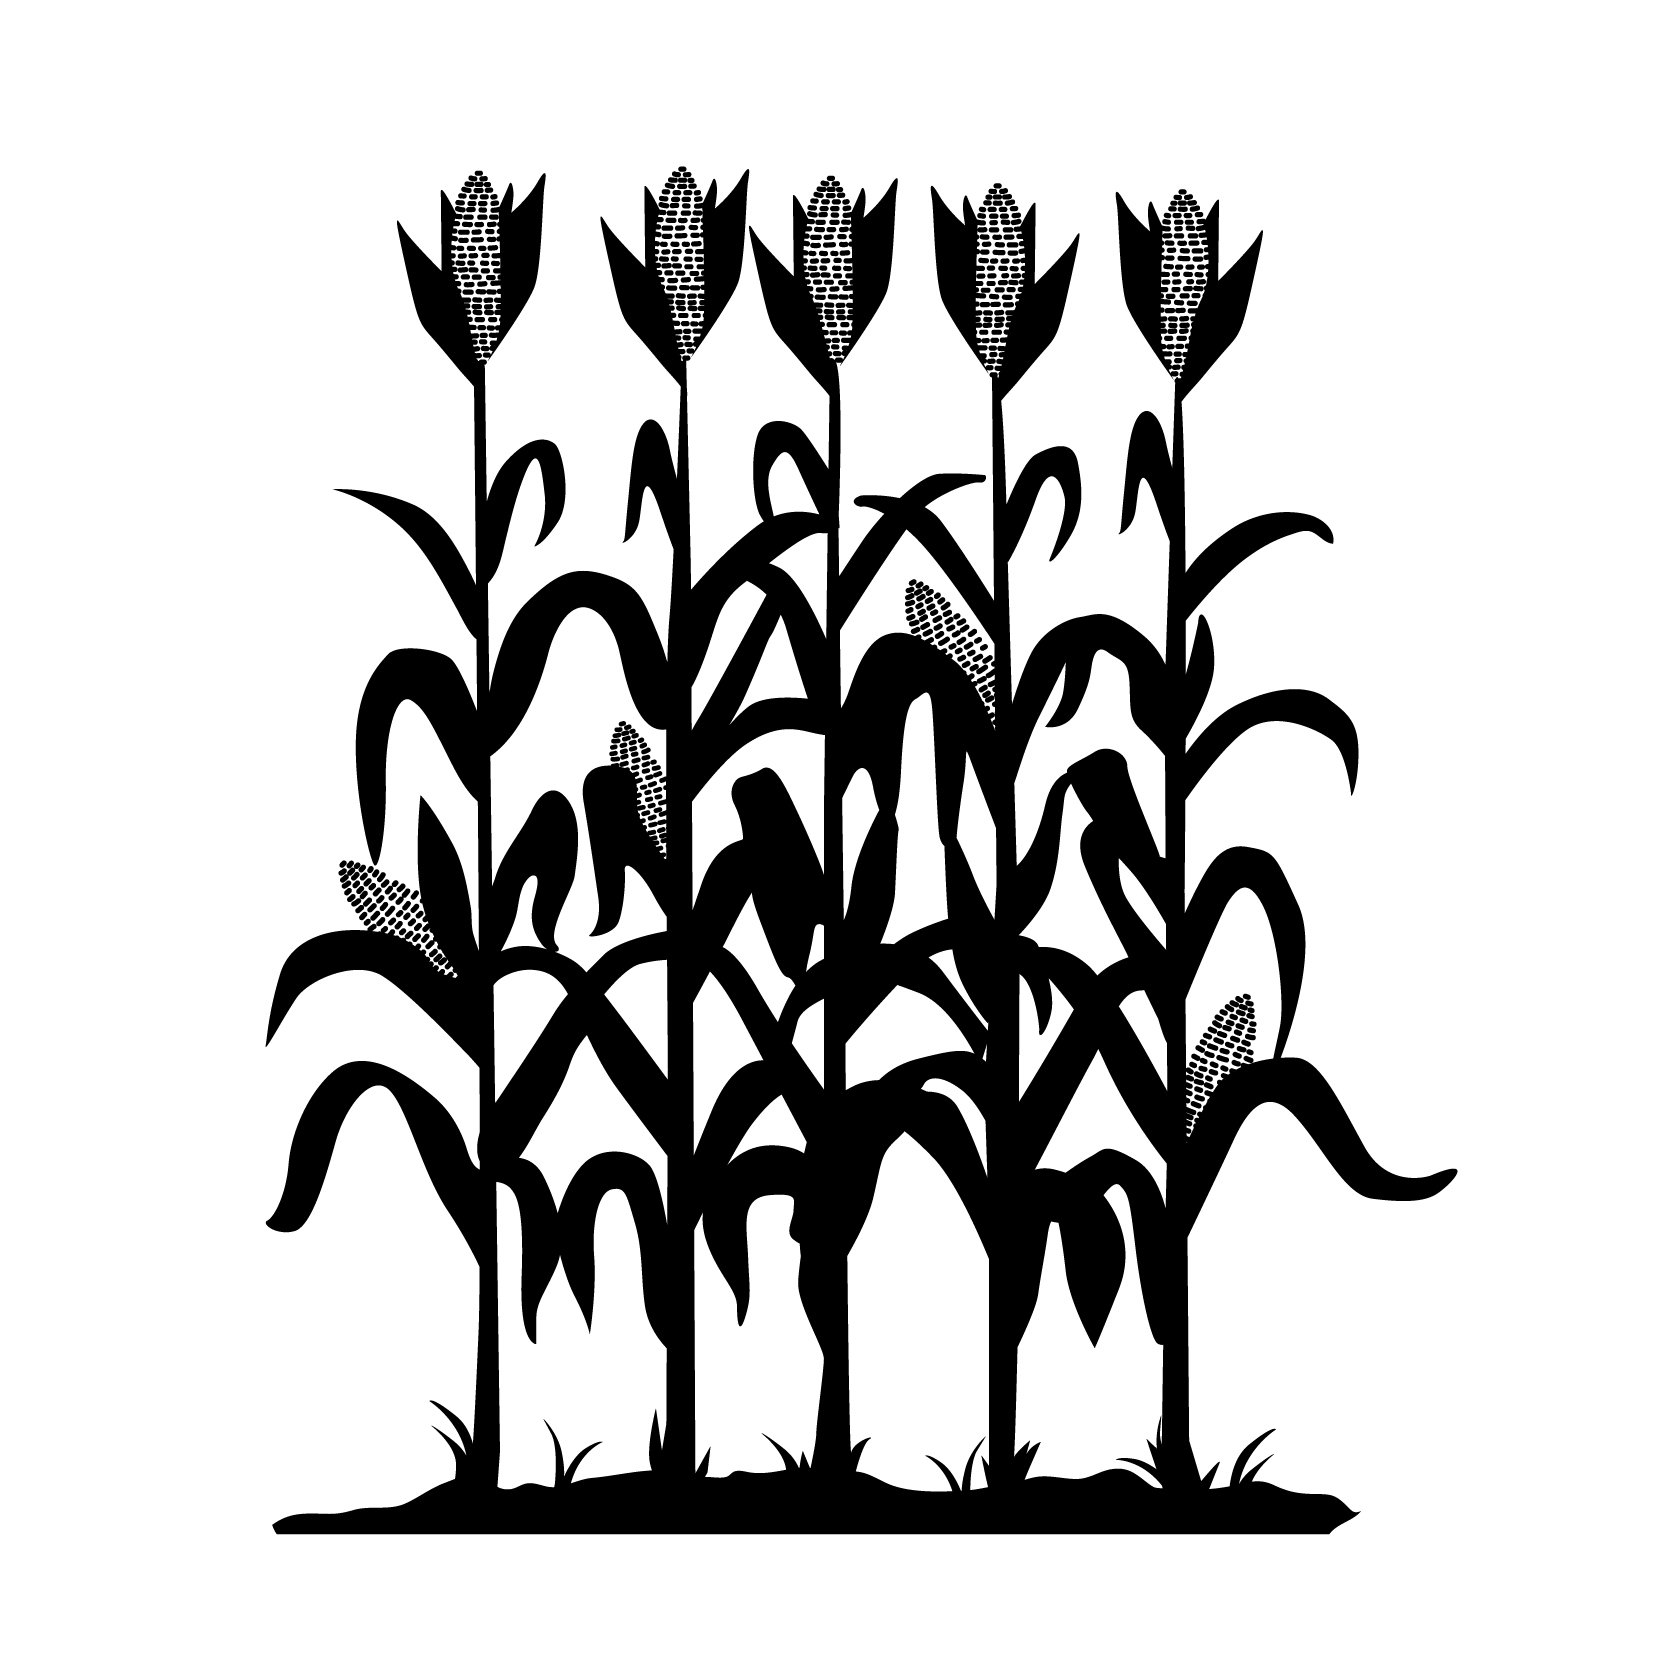 Corn Row Silhouette - Small, Black - Vinyl Wall Art Decal for Homes, Offices, Kids Rooms, Nurseries, Schools, High Schools, Colleges, Universities, Interior Designers, Architects, Remodelers